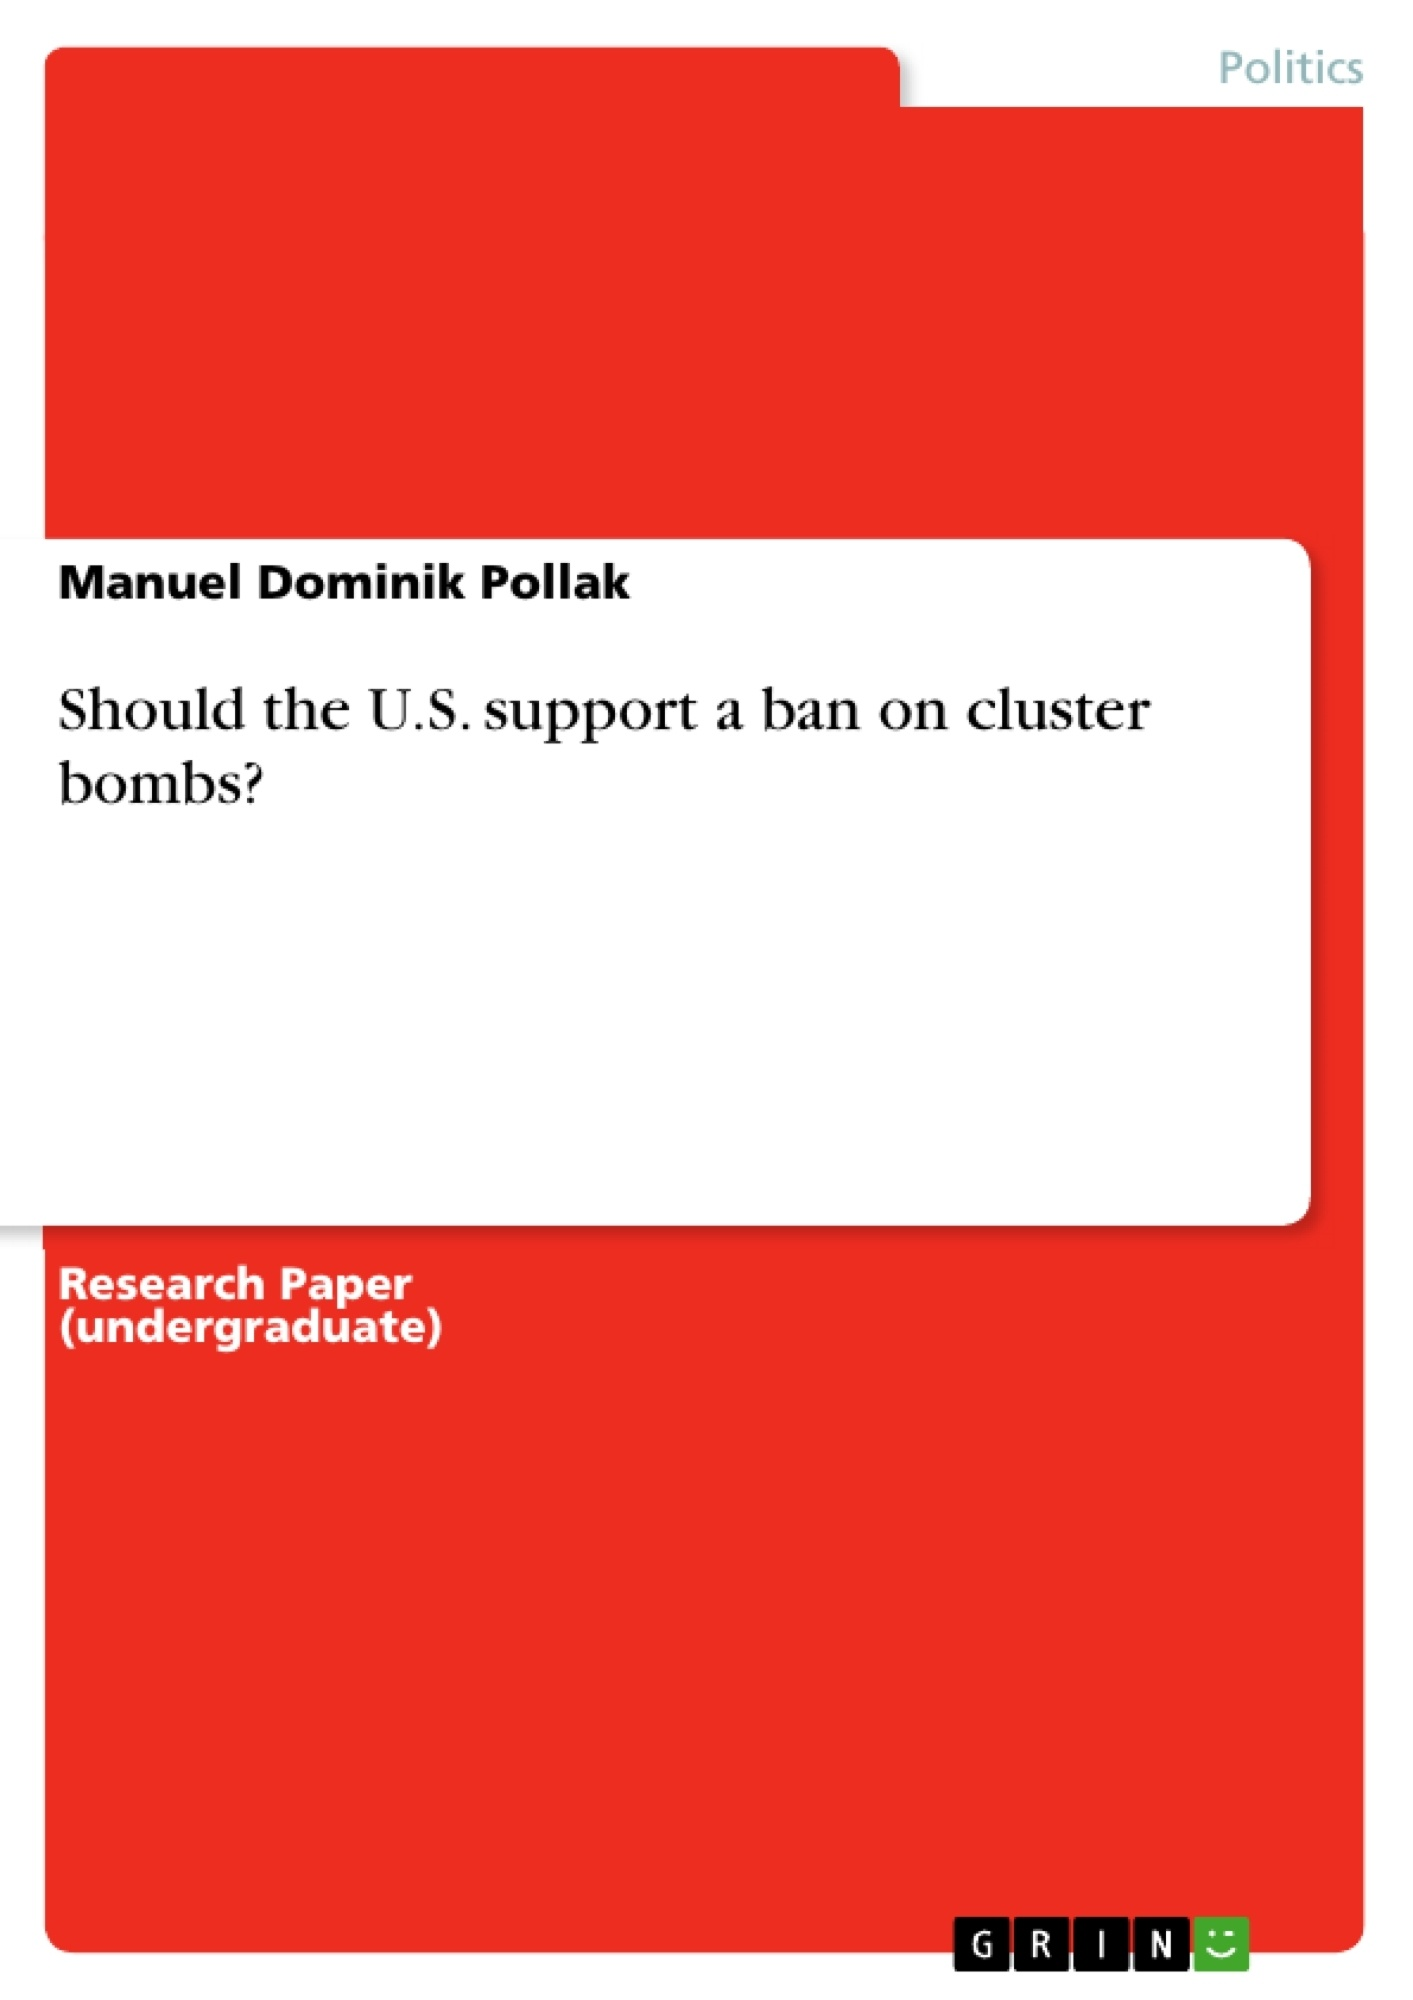 Title: Should the U.S. support a ban on cluster bombs?